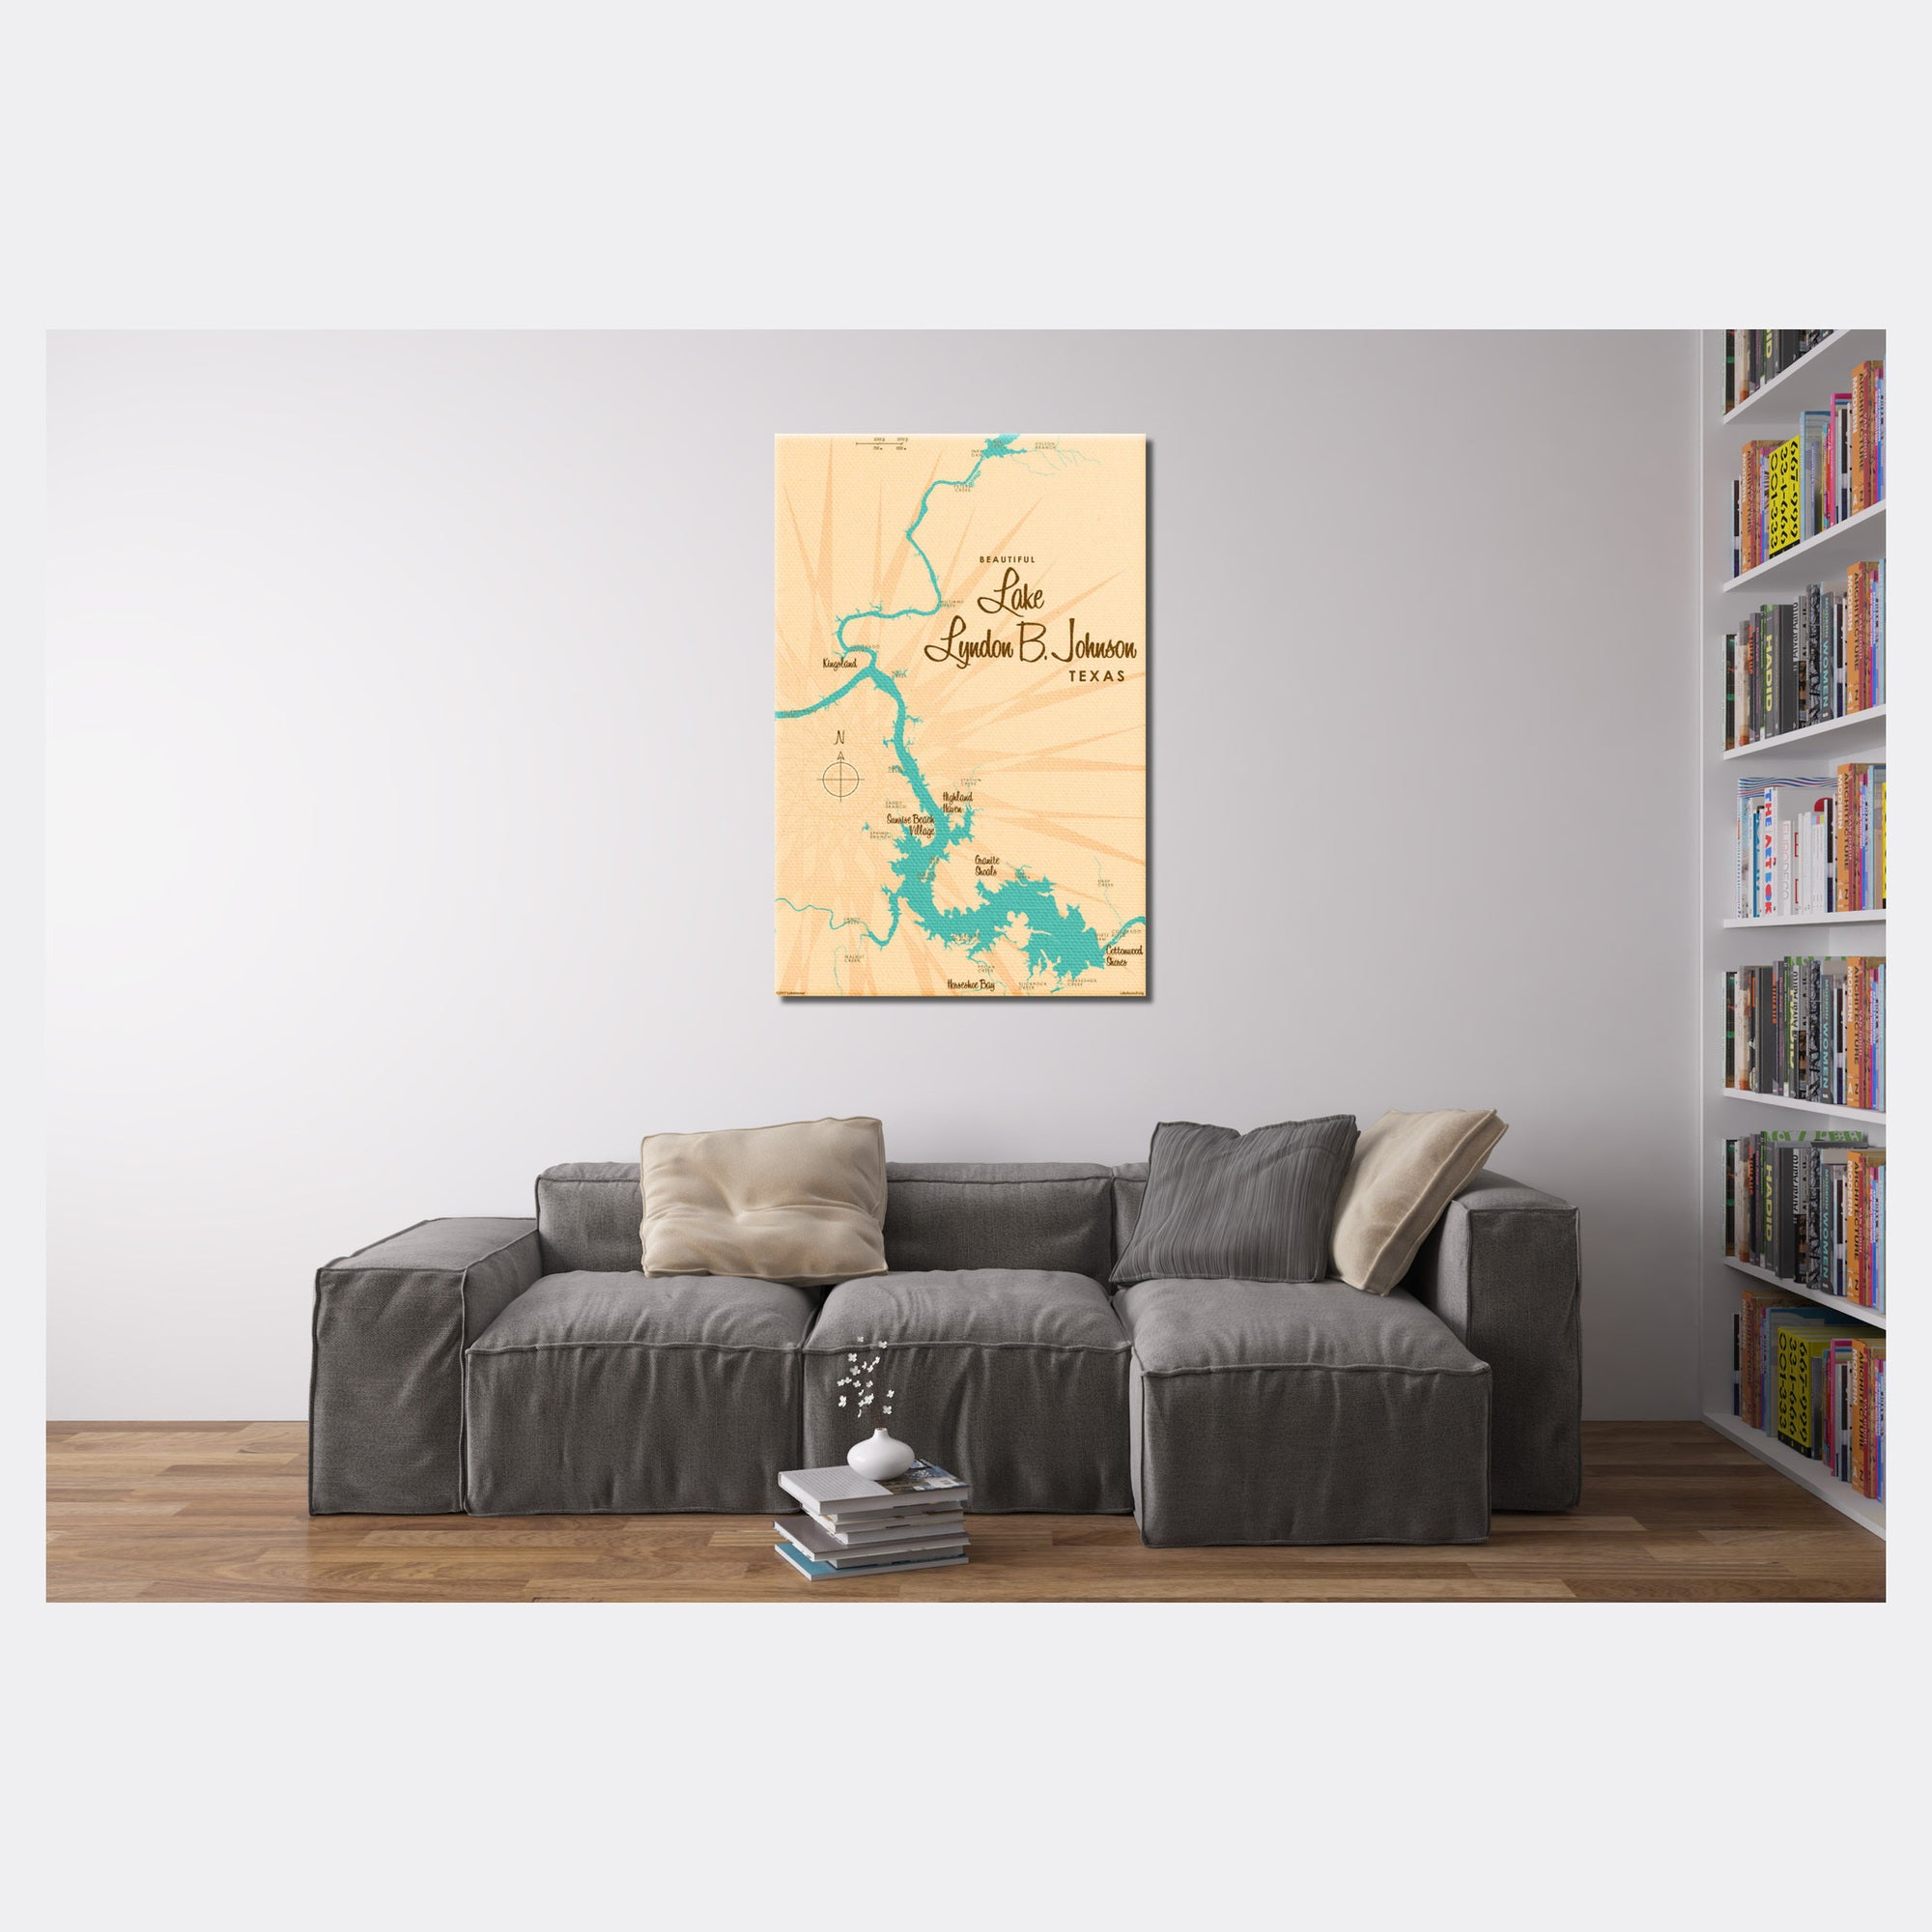 Lake LBJ Texas, Canvas Print